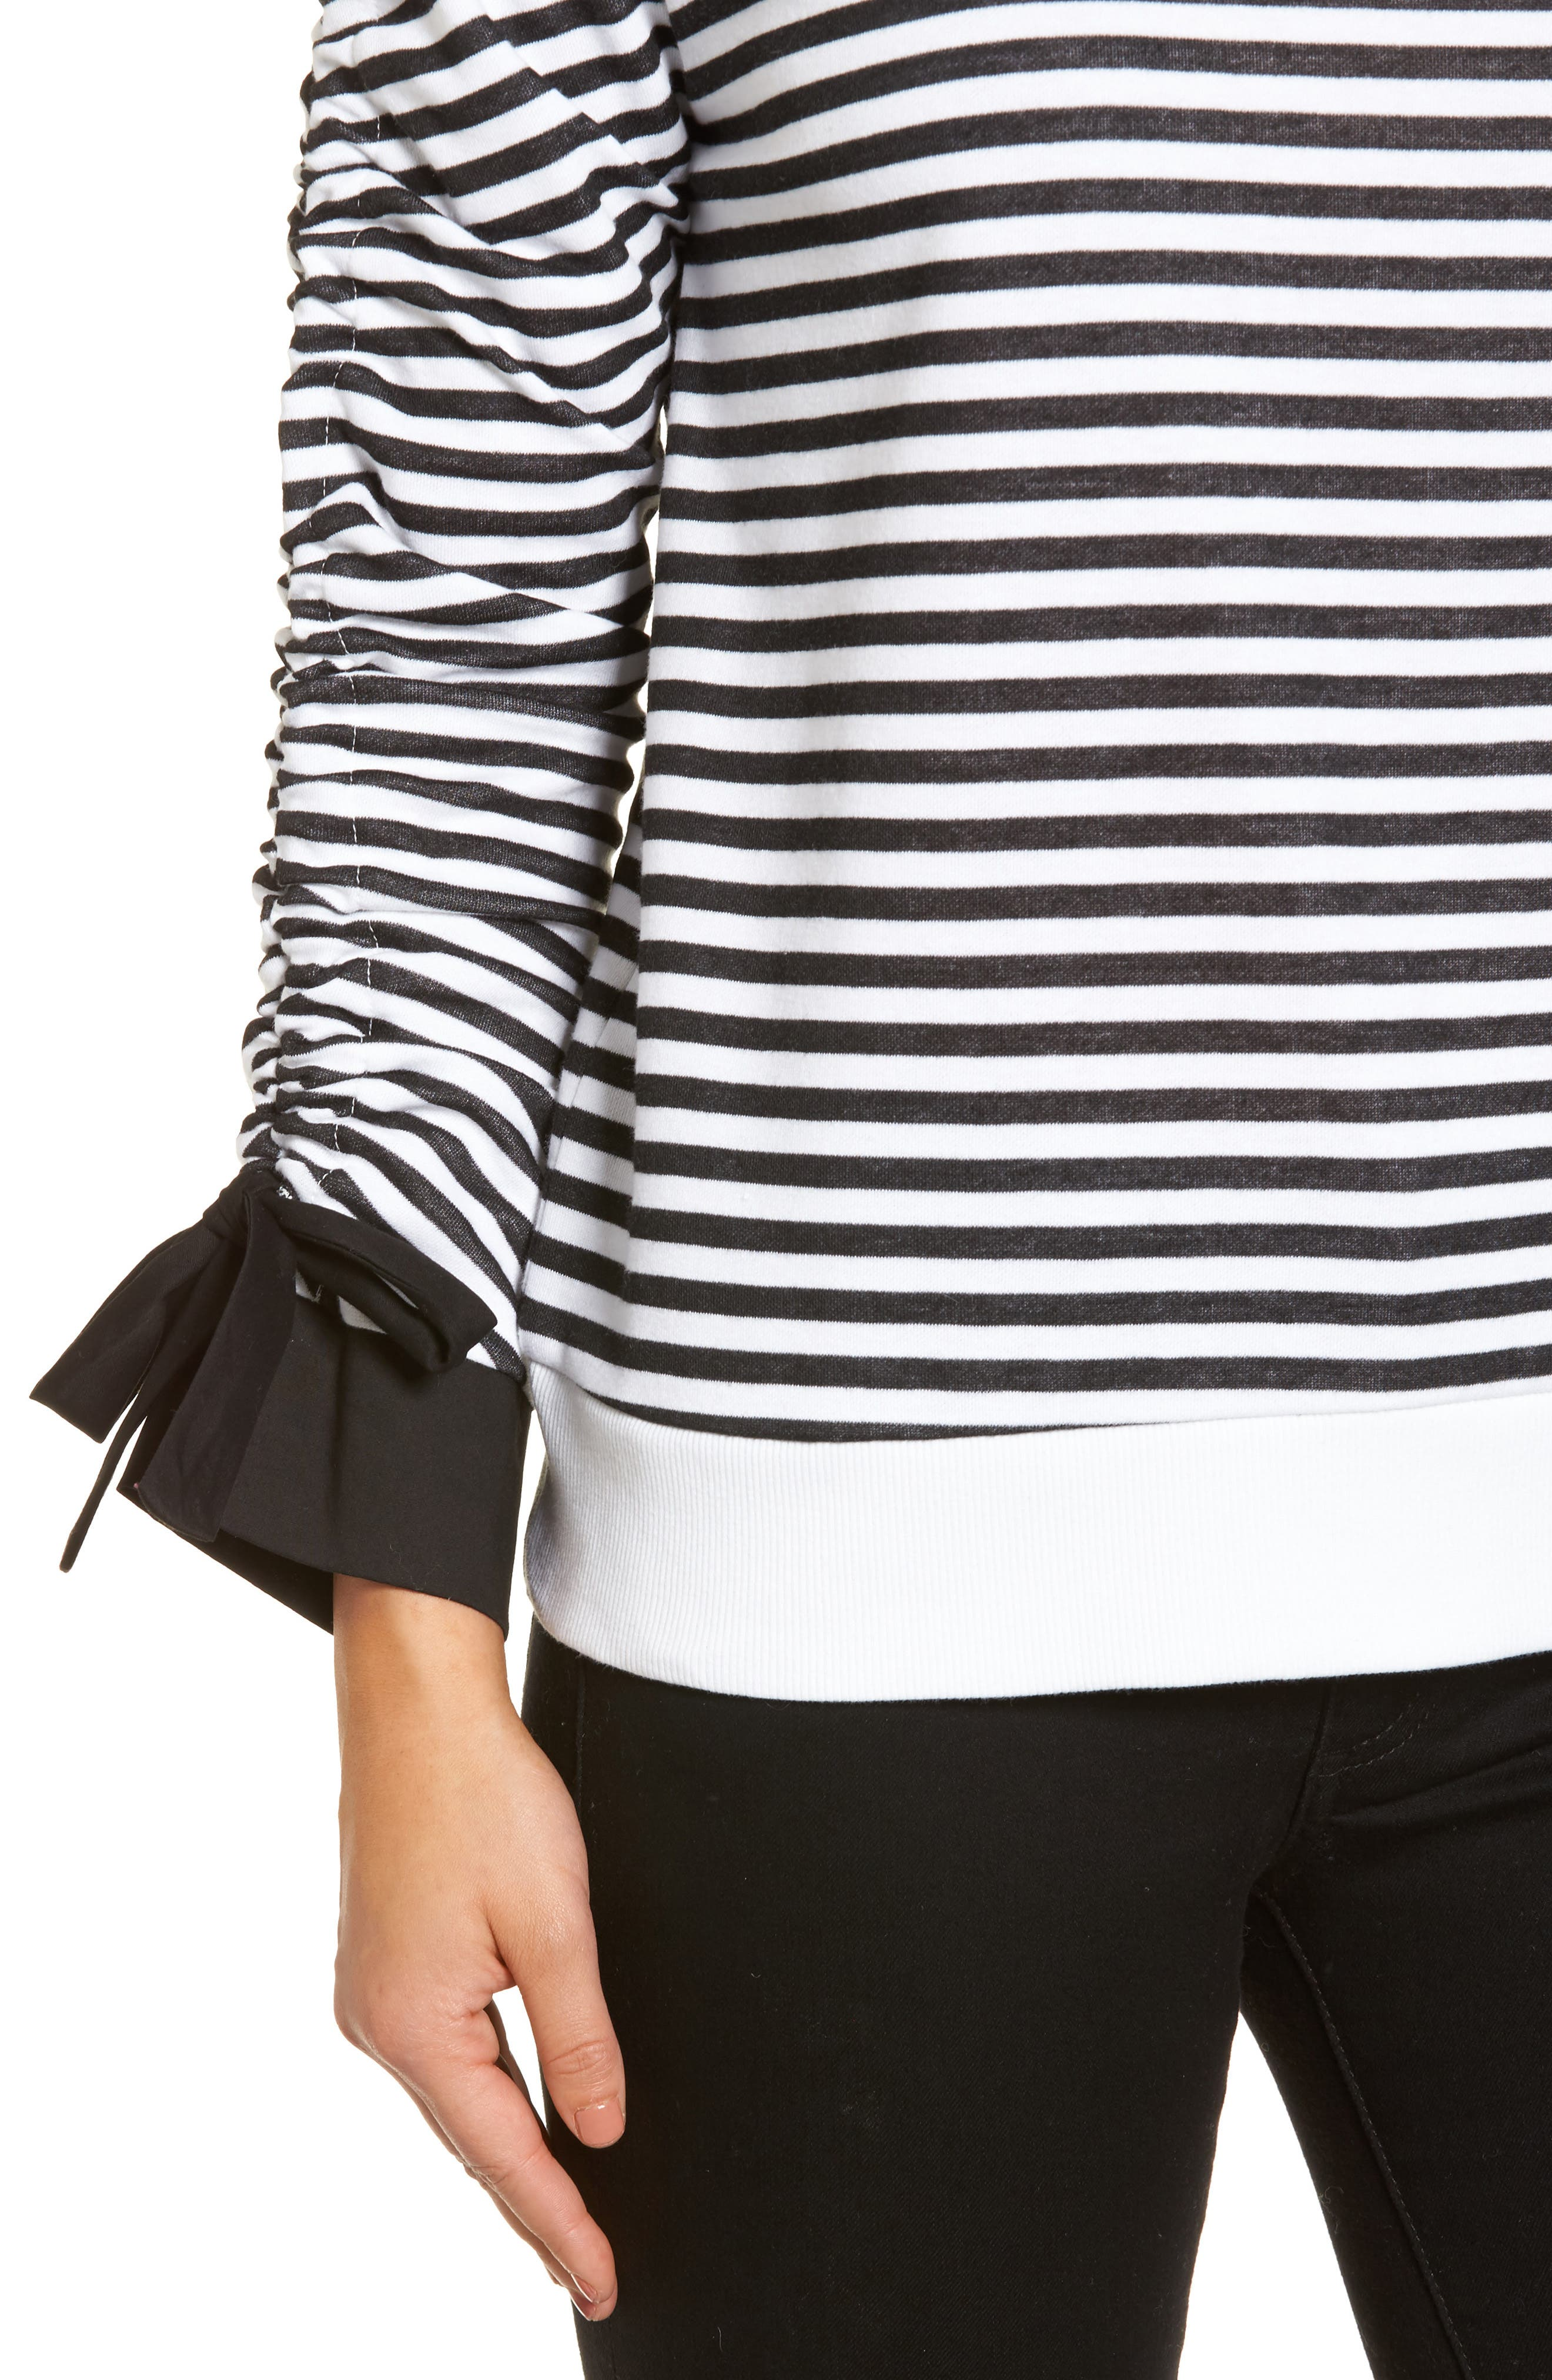 Ruched Sleeve Poplin Trim Sweatshirt,                             Alternate thumbnail 4, color,                             Black- White Stripe